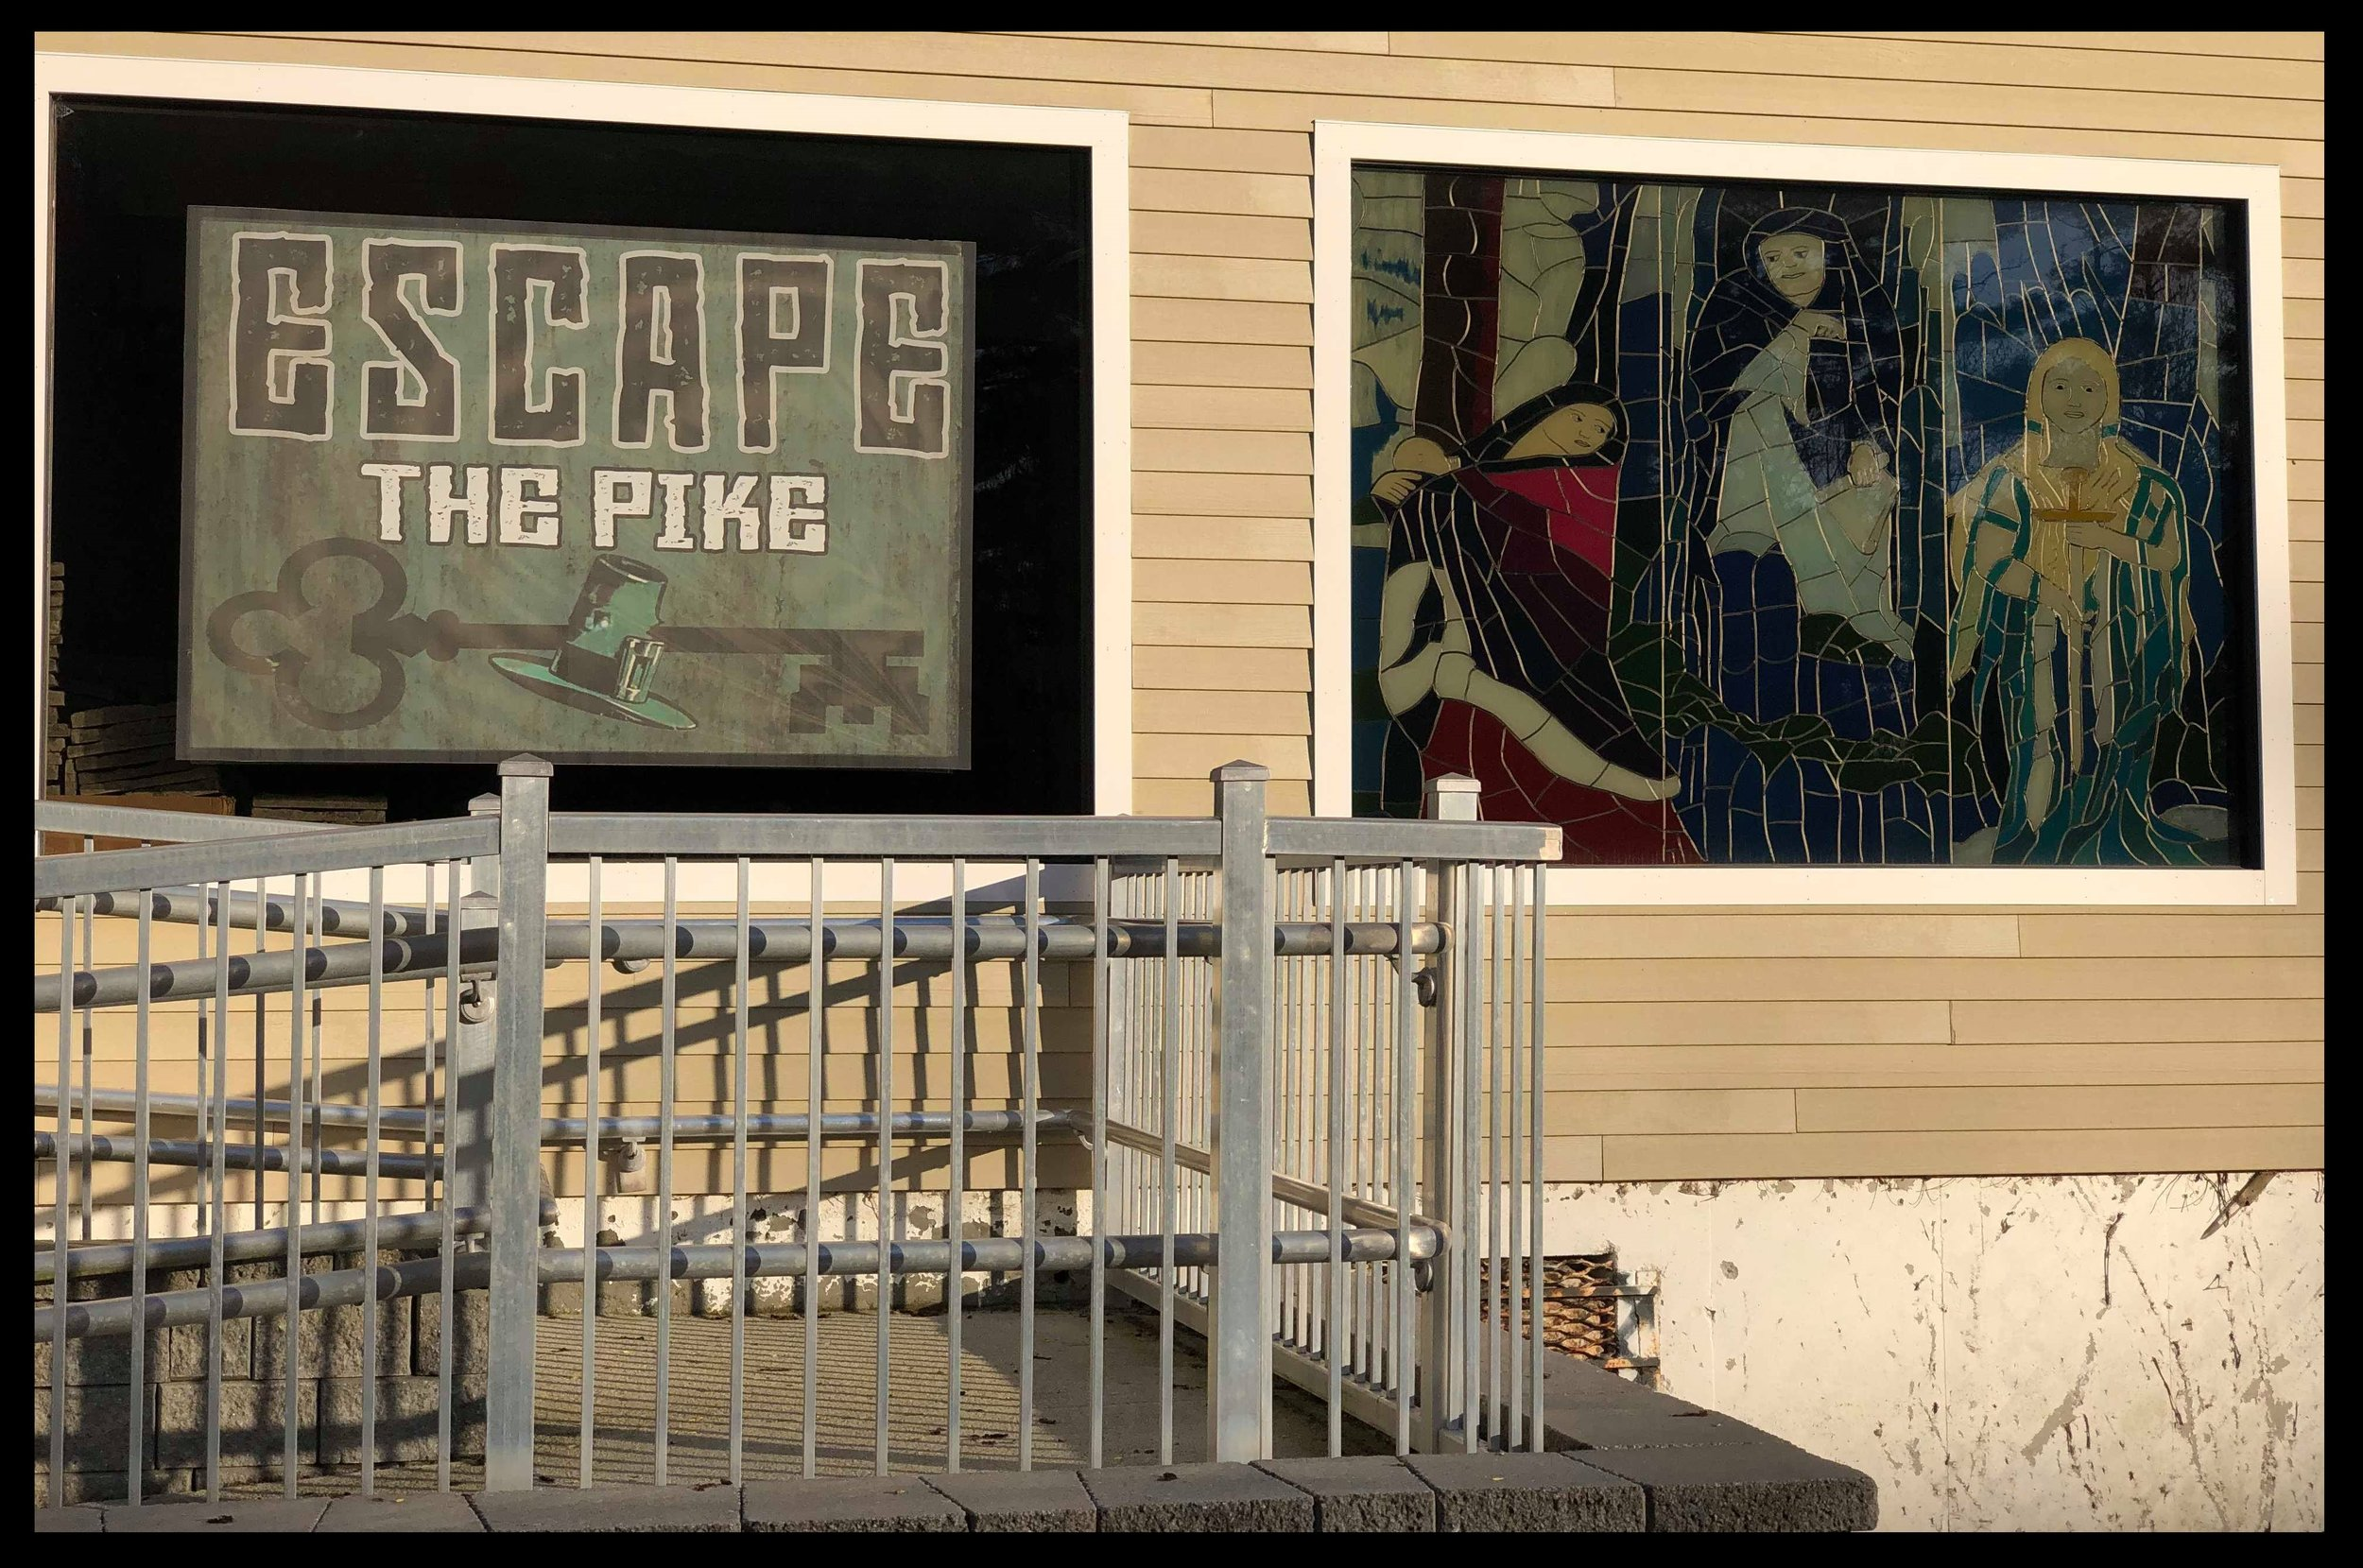 Escape the Pike- windows